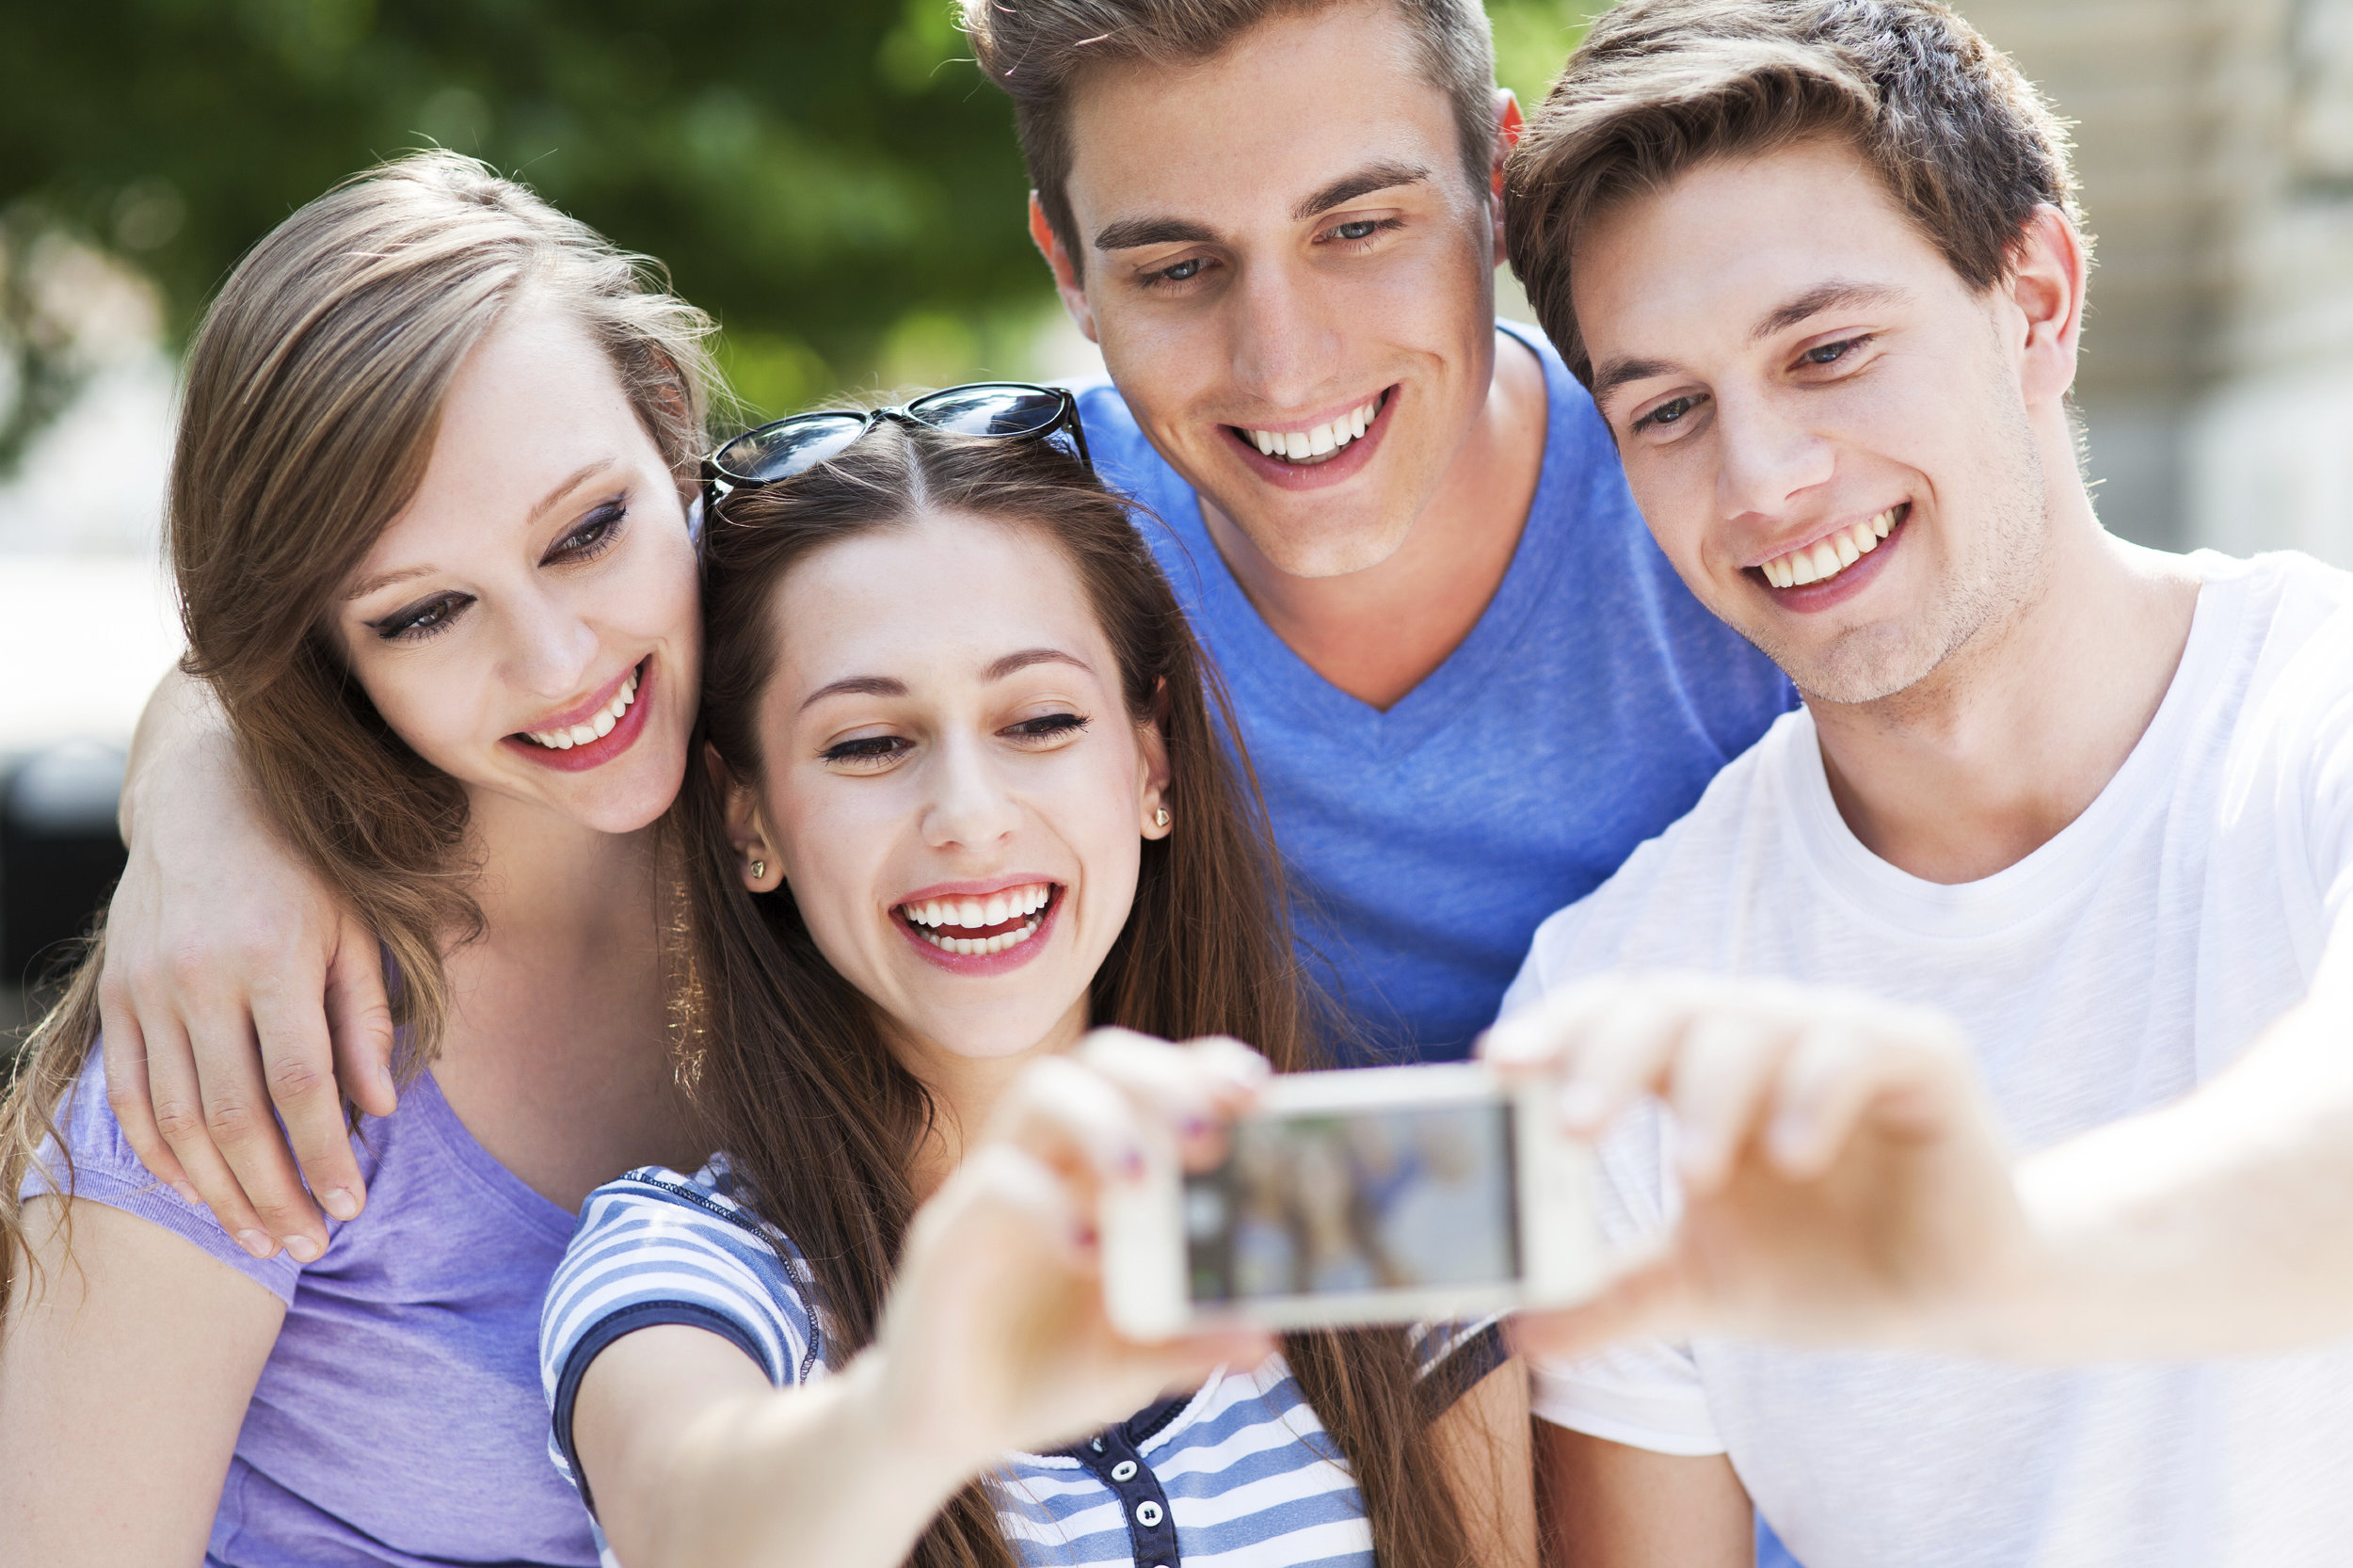 Teen's dentistry is important for maintaining proper oral health.